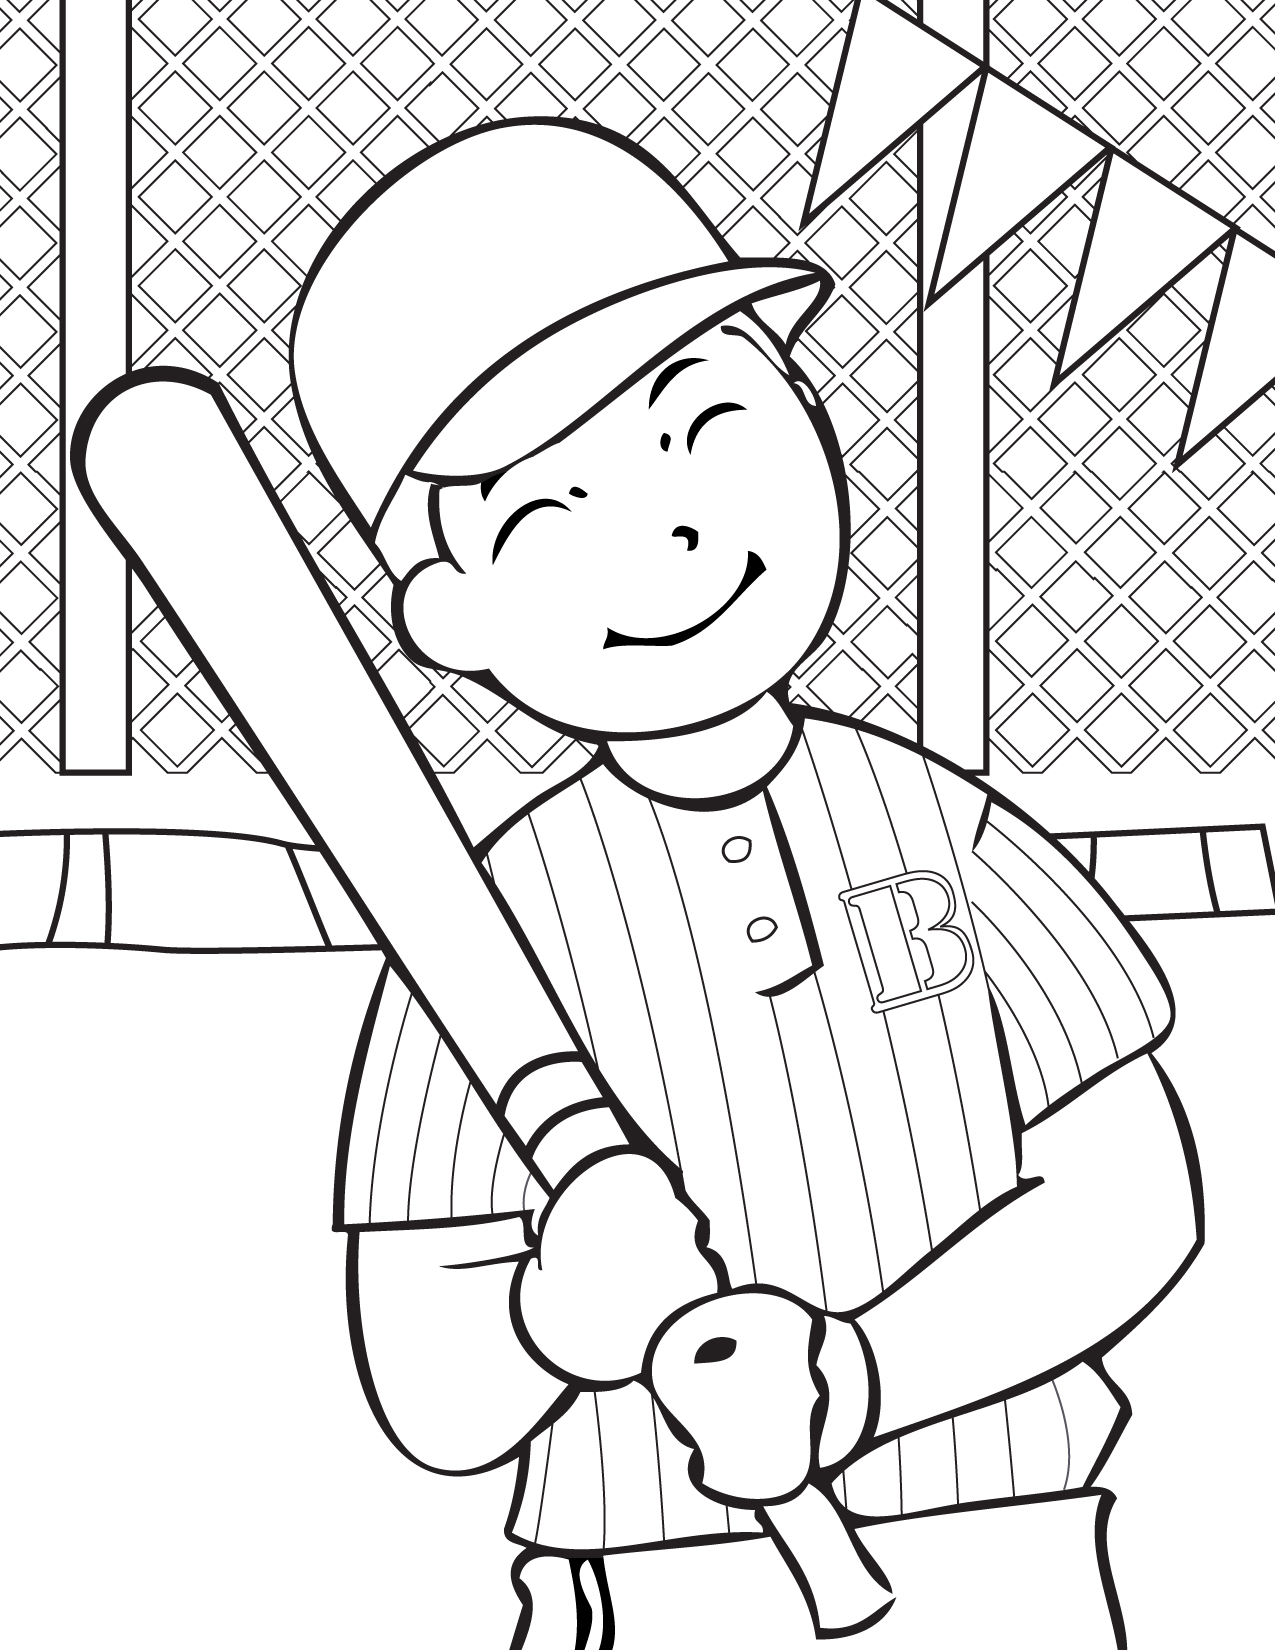 Free Baseball Coloring Pages For Kids